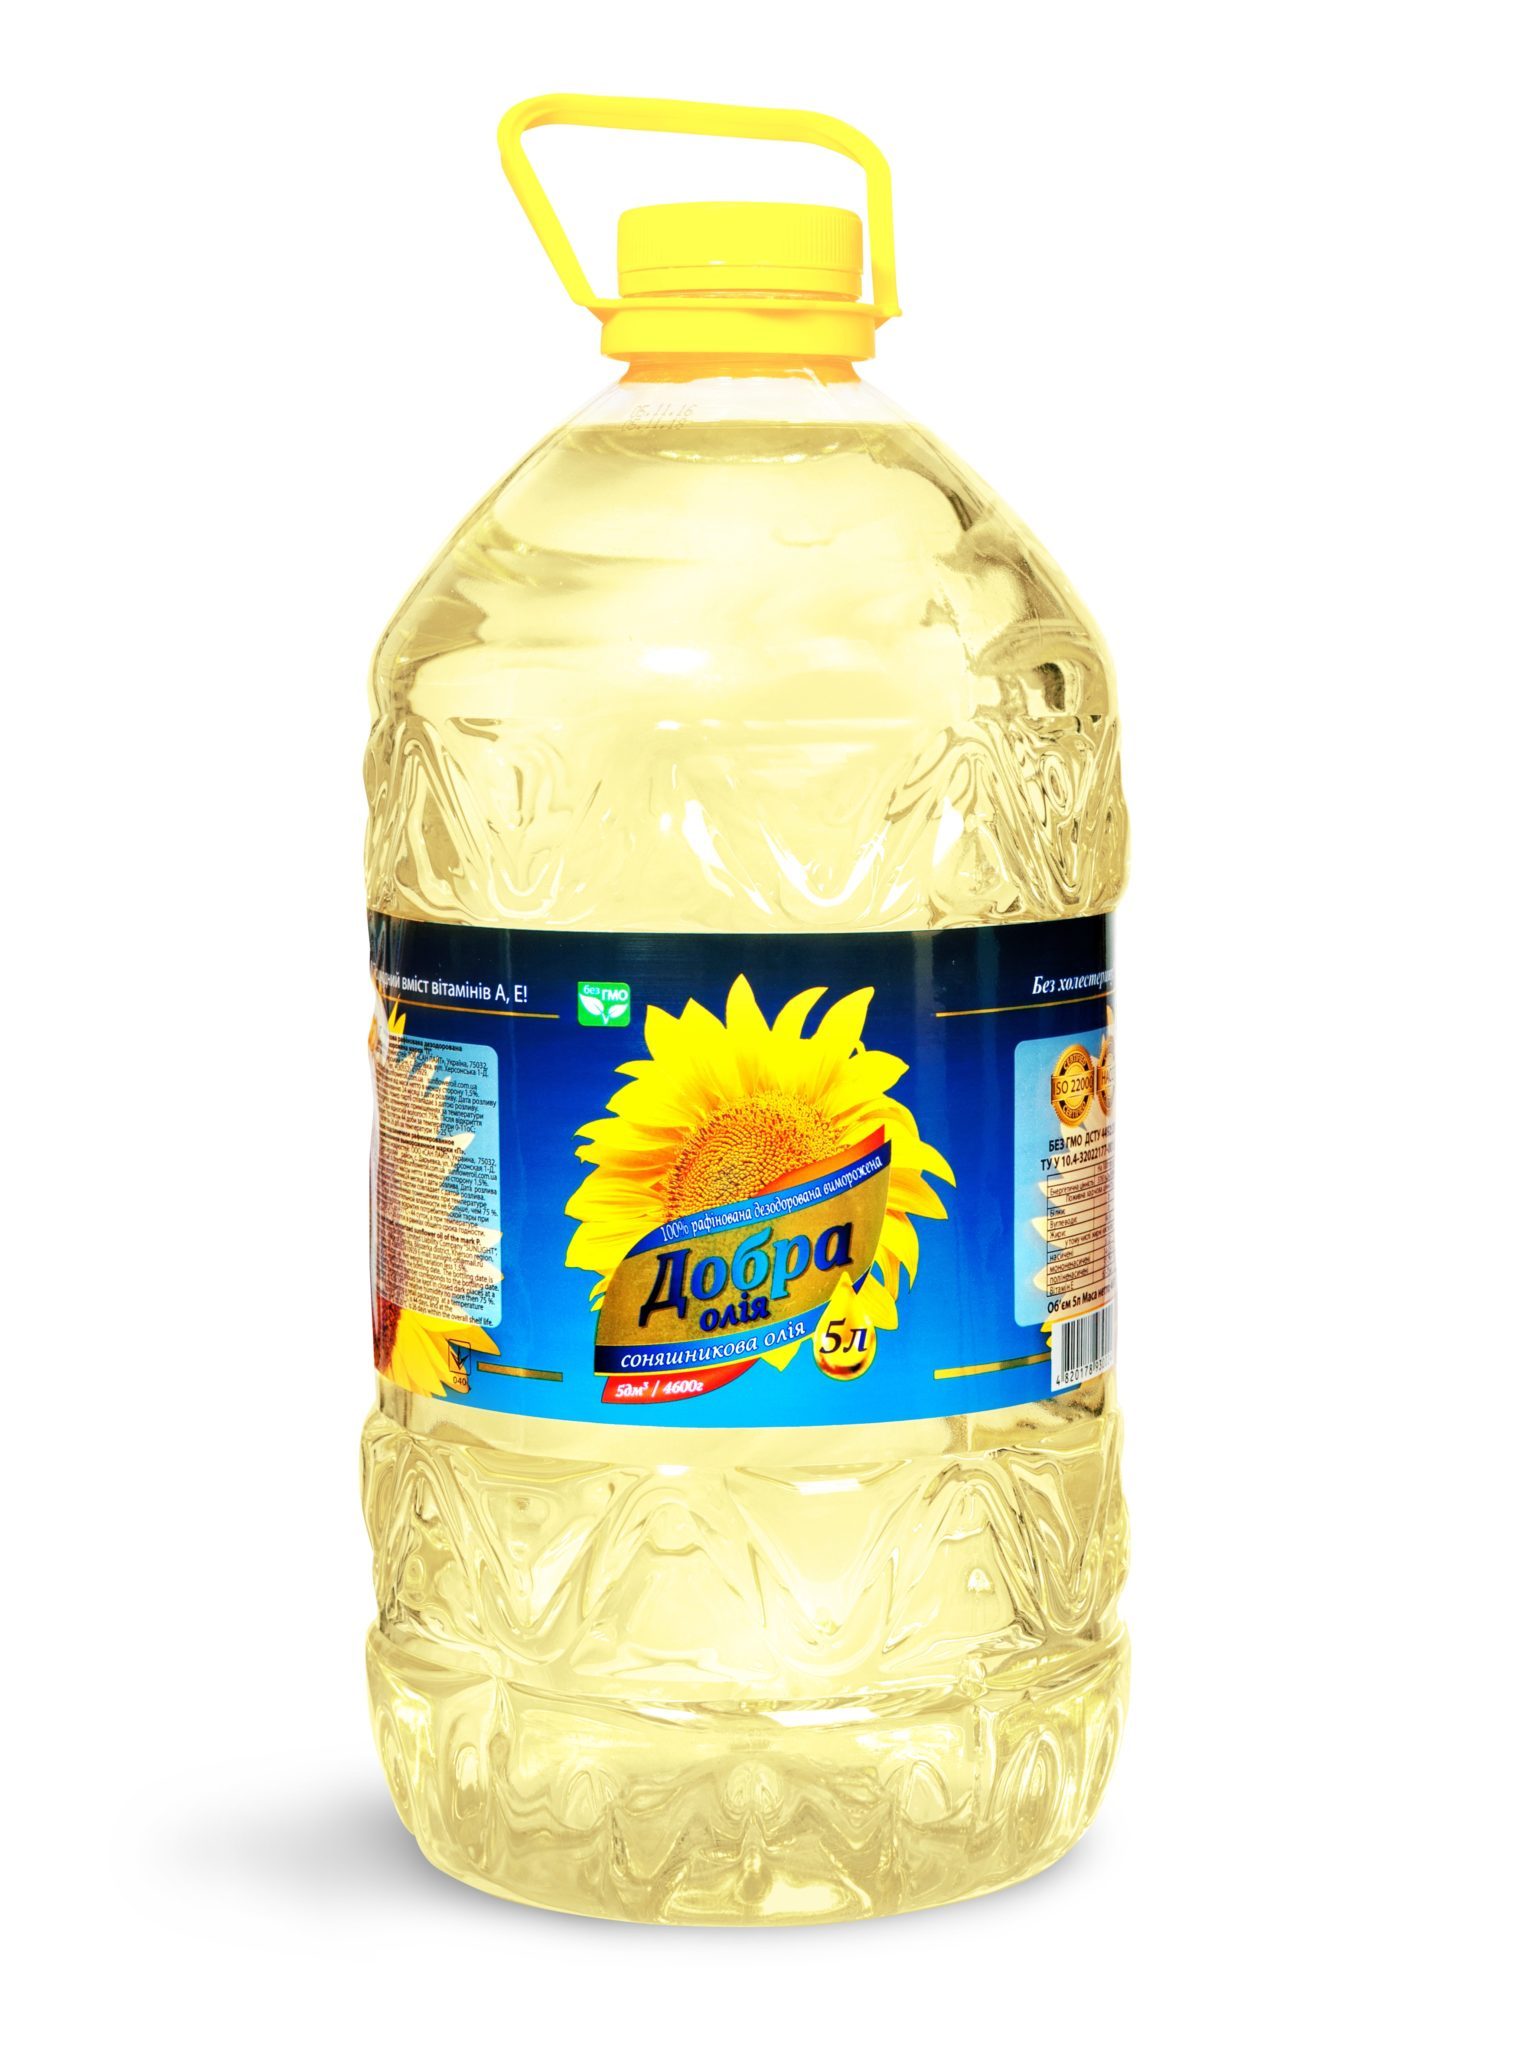 BOTTLE 5 liter Sunflower refined oil